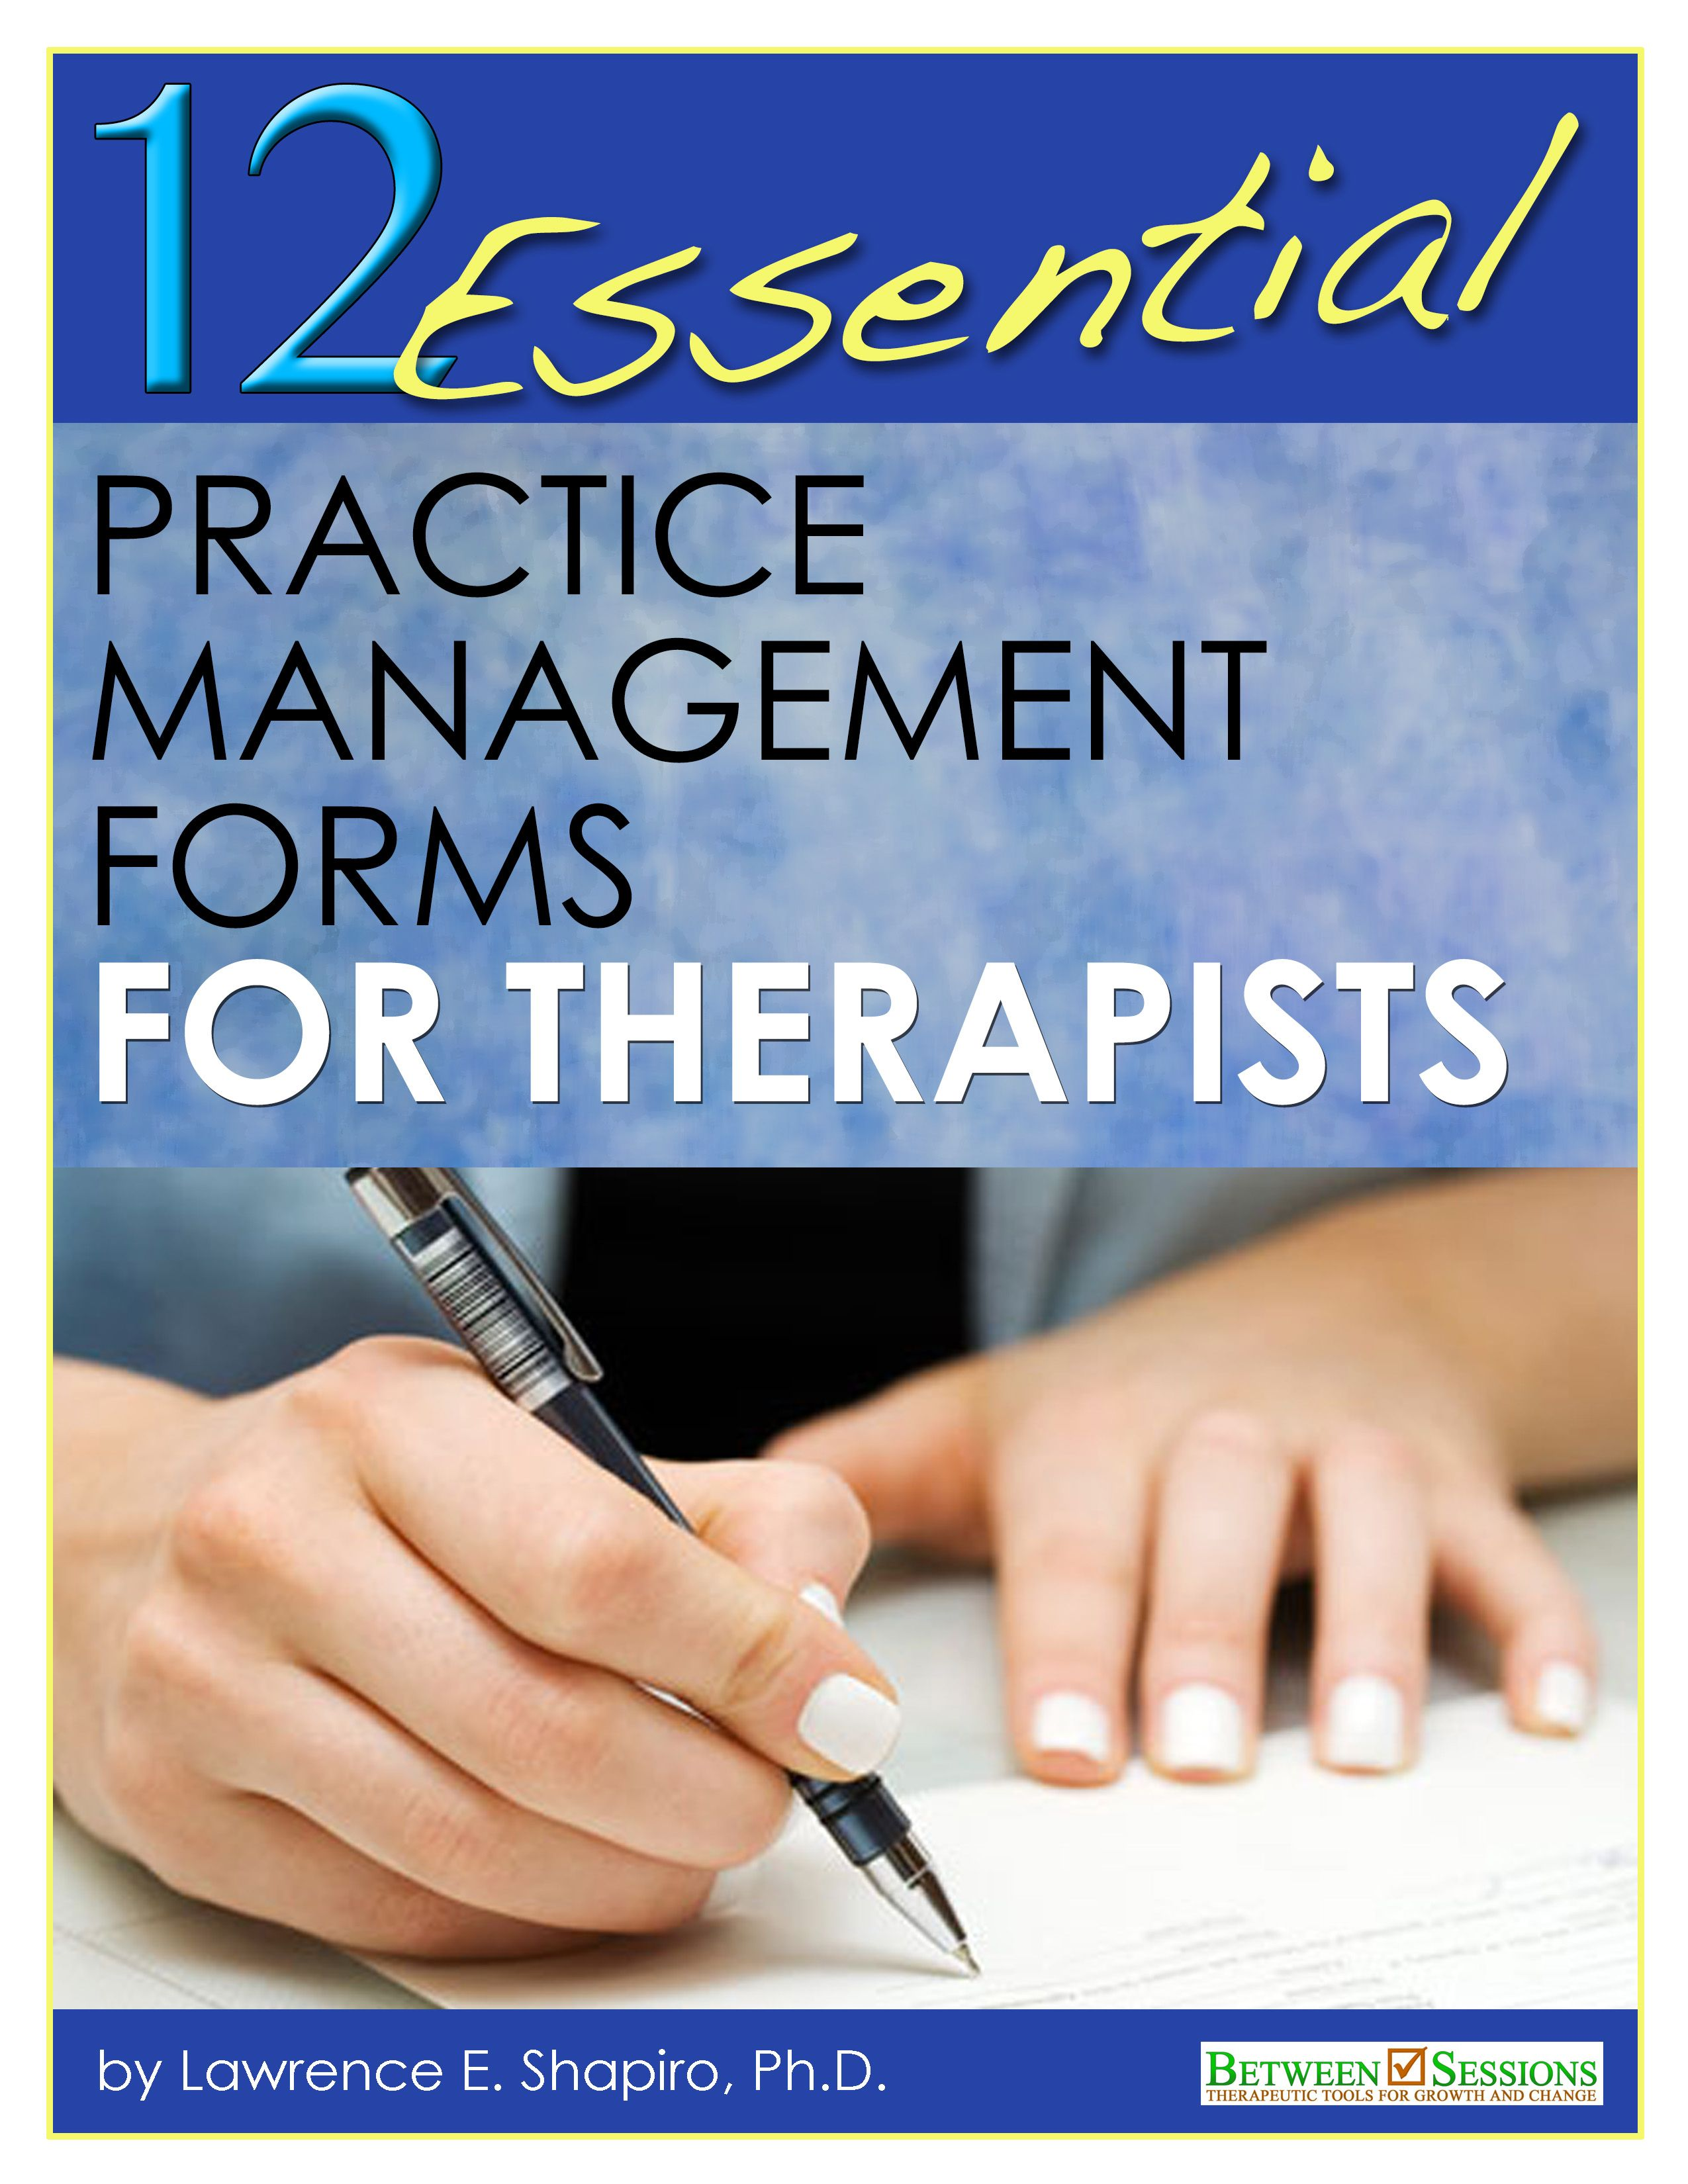 Get Immediate Access To Our Free E Book Of 12 Essential